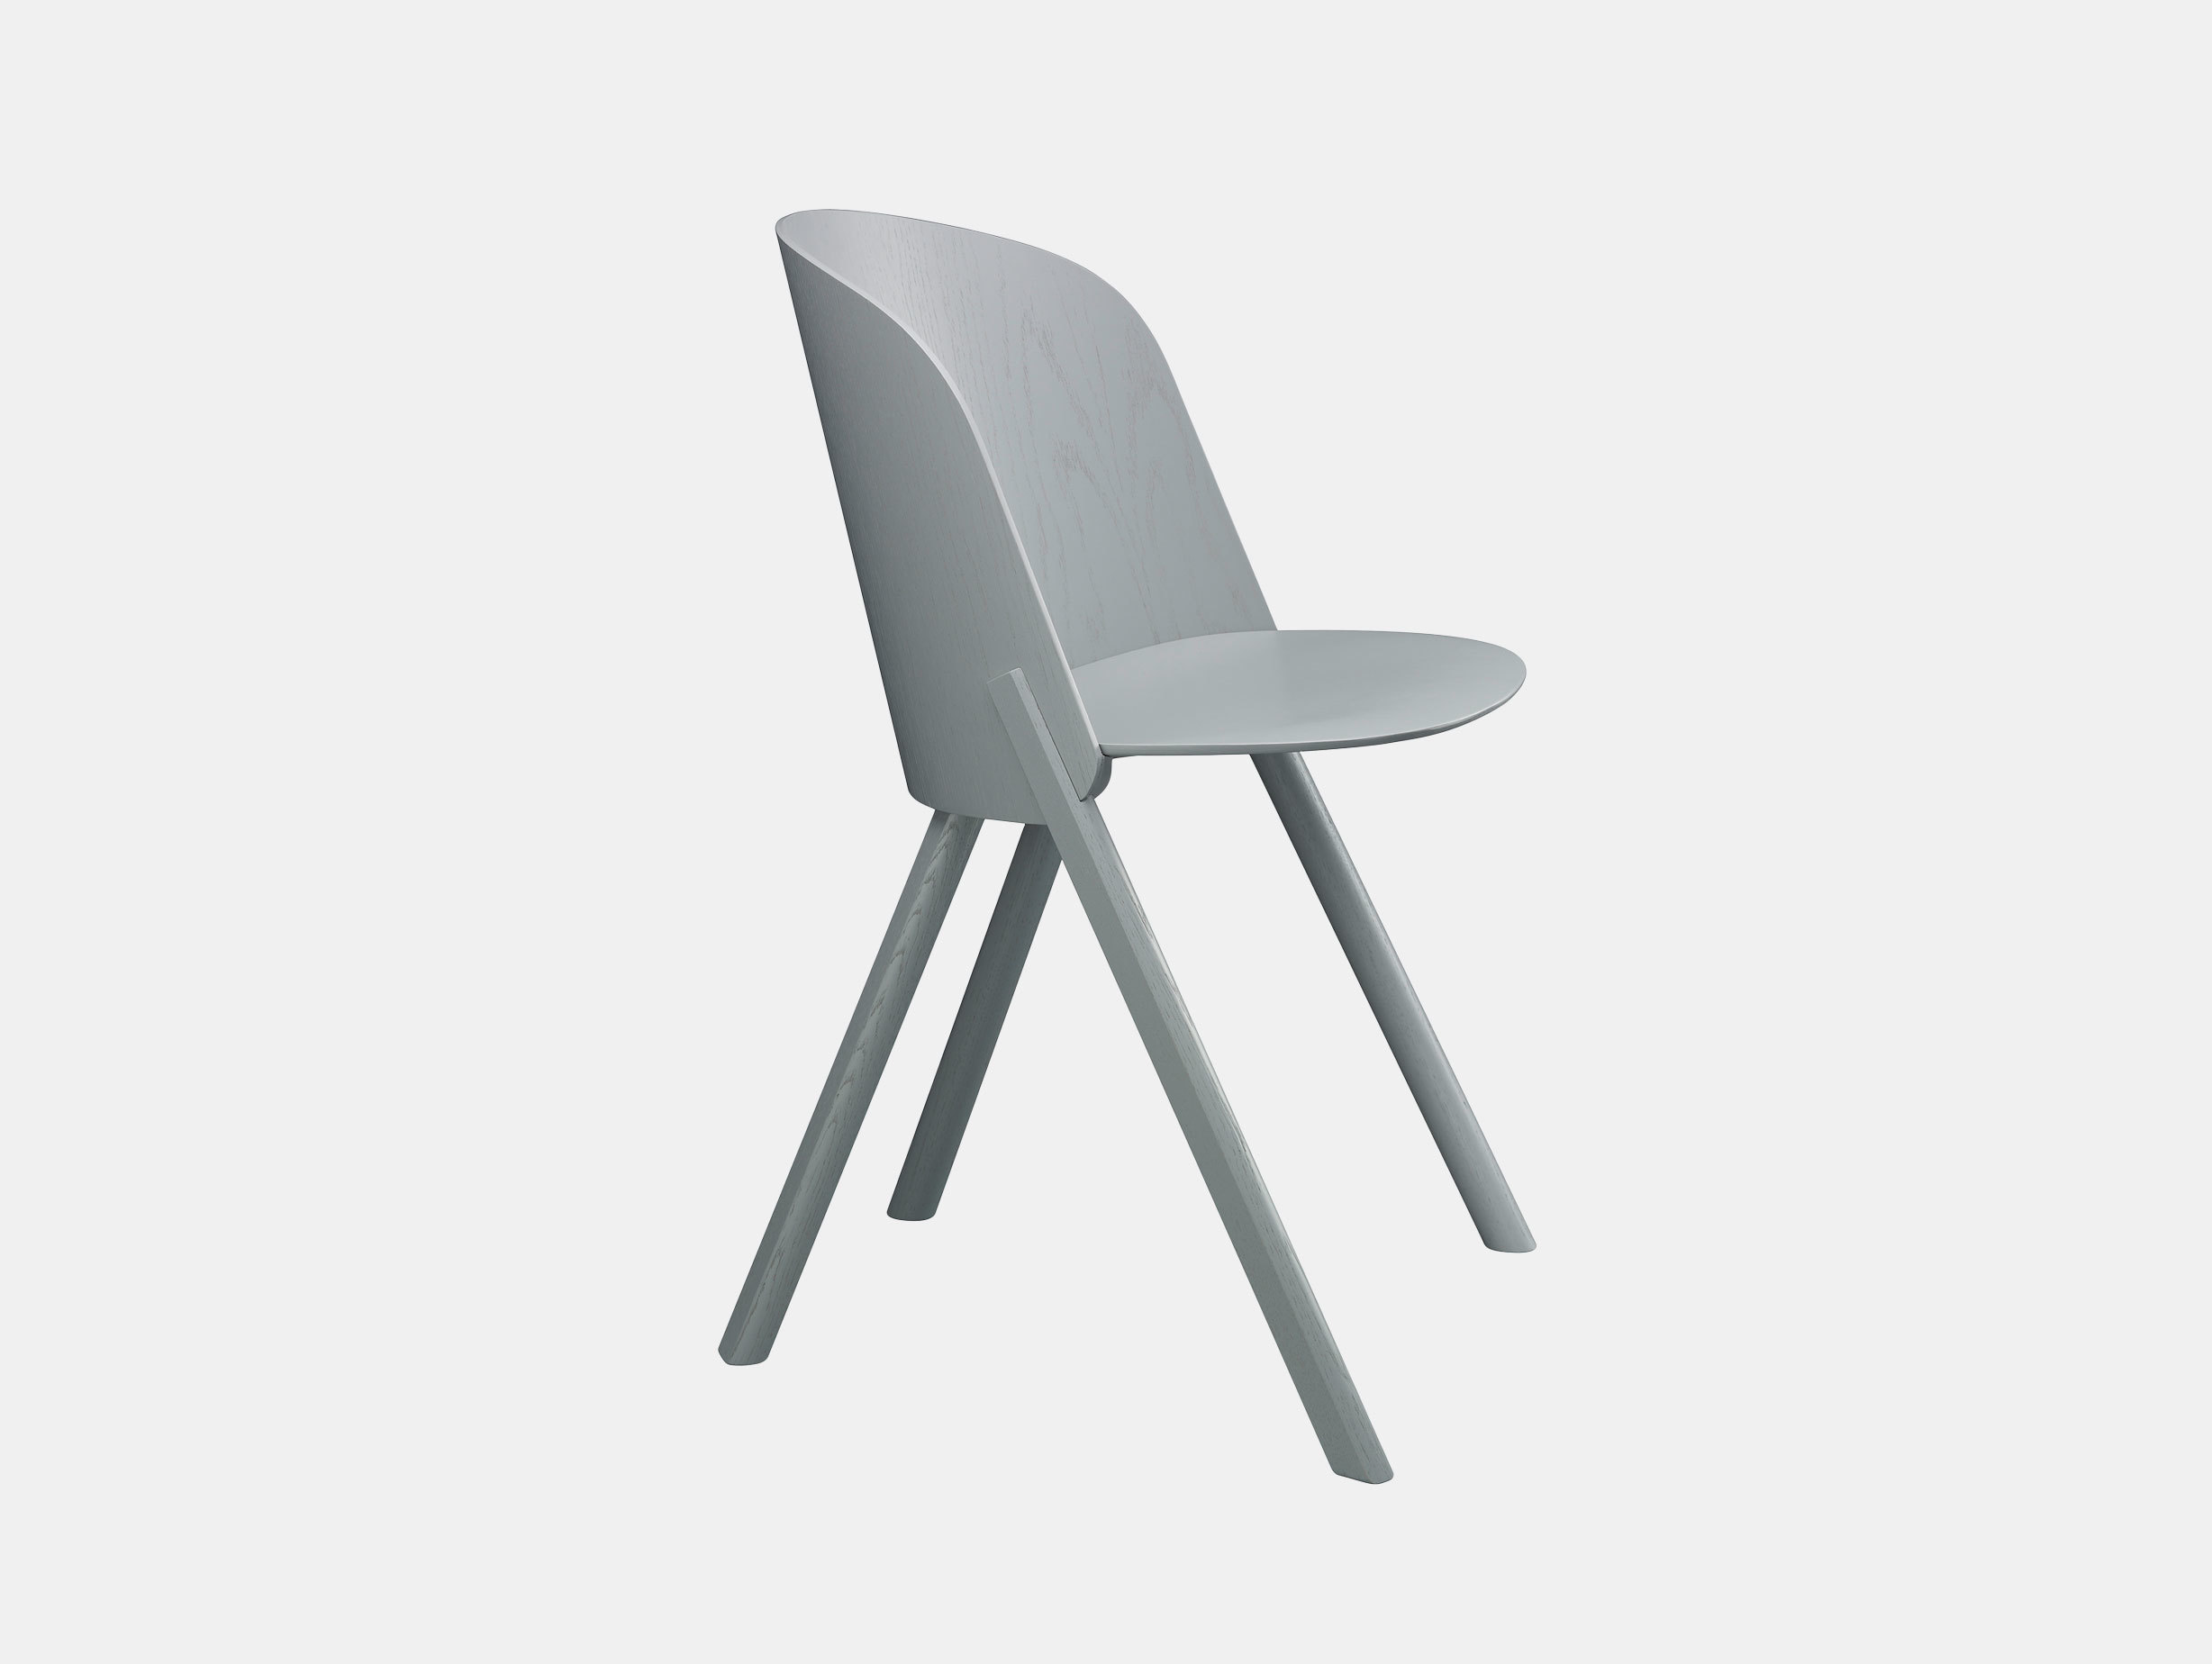 This Chair image 1